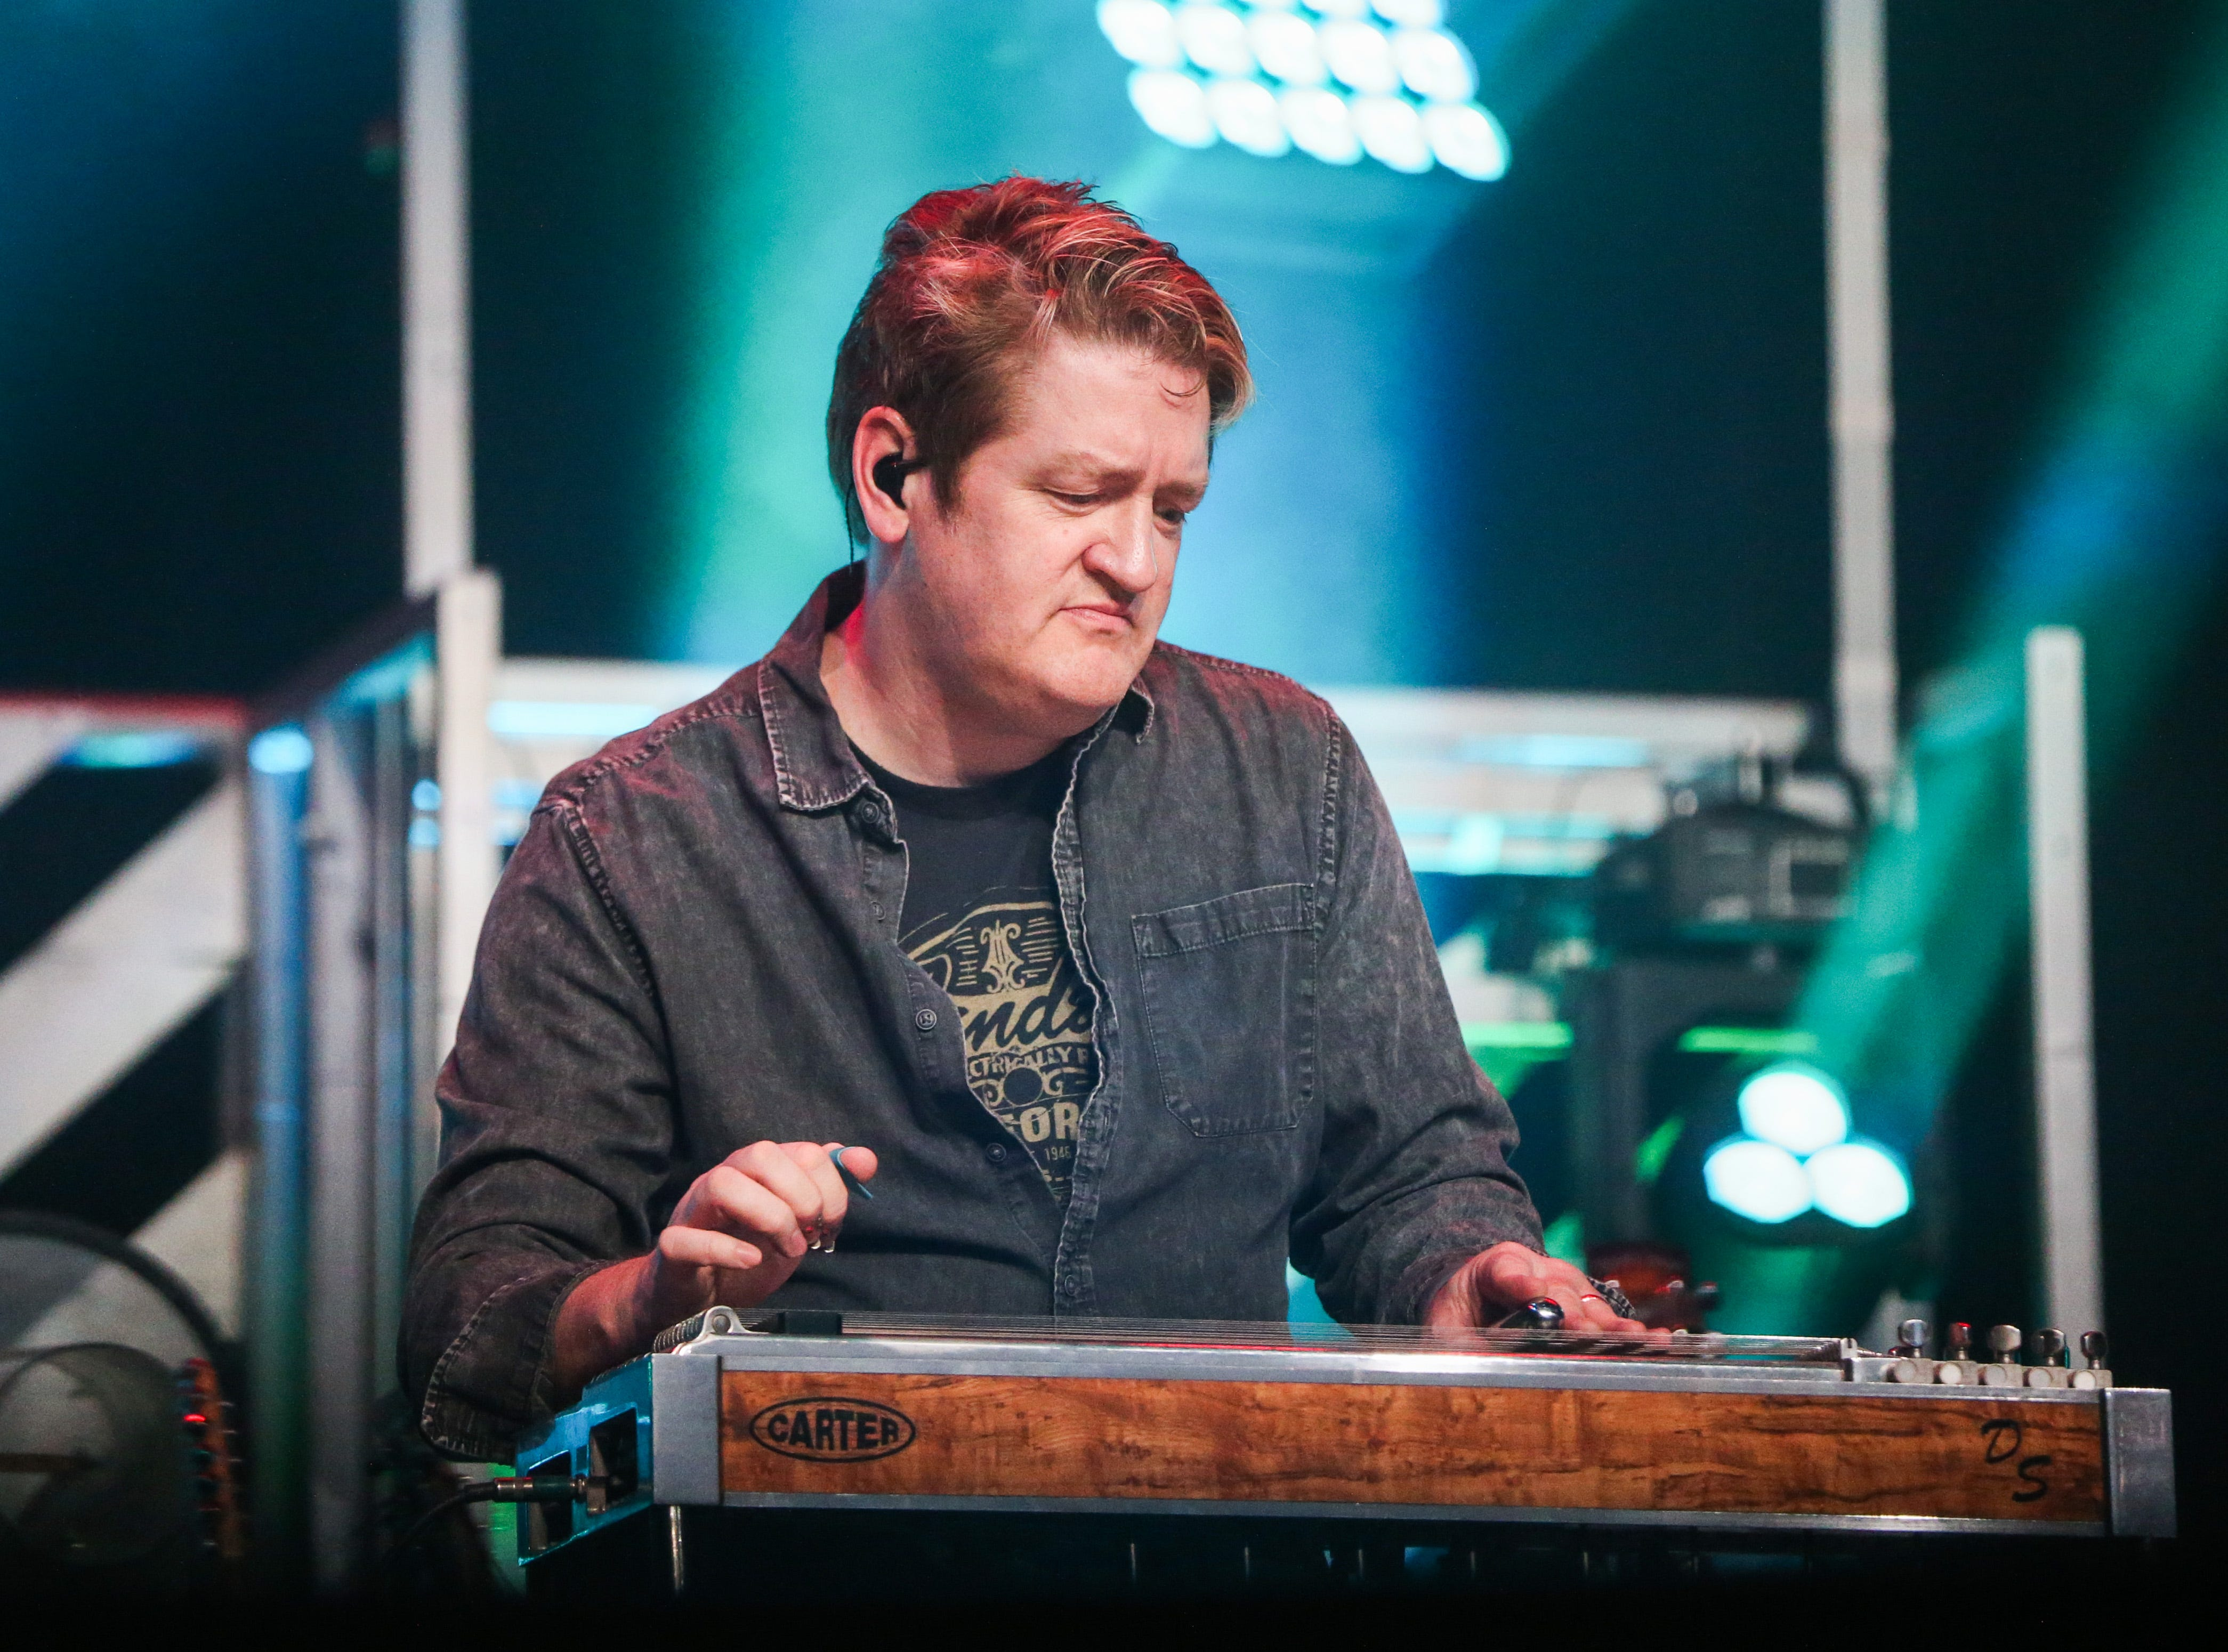 Josh Turner band member plays during the concert Friday, April 5, 2019, at Murphey Performance Hall.